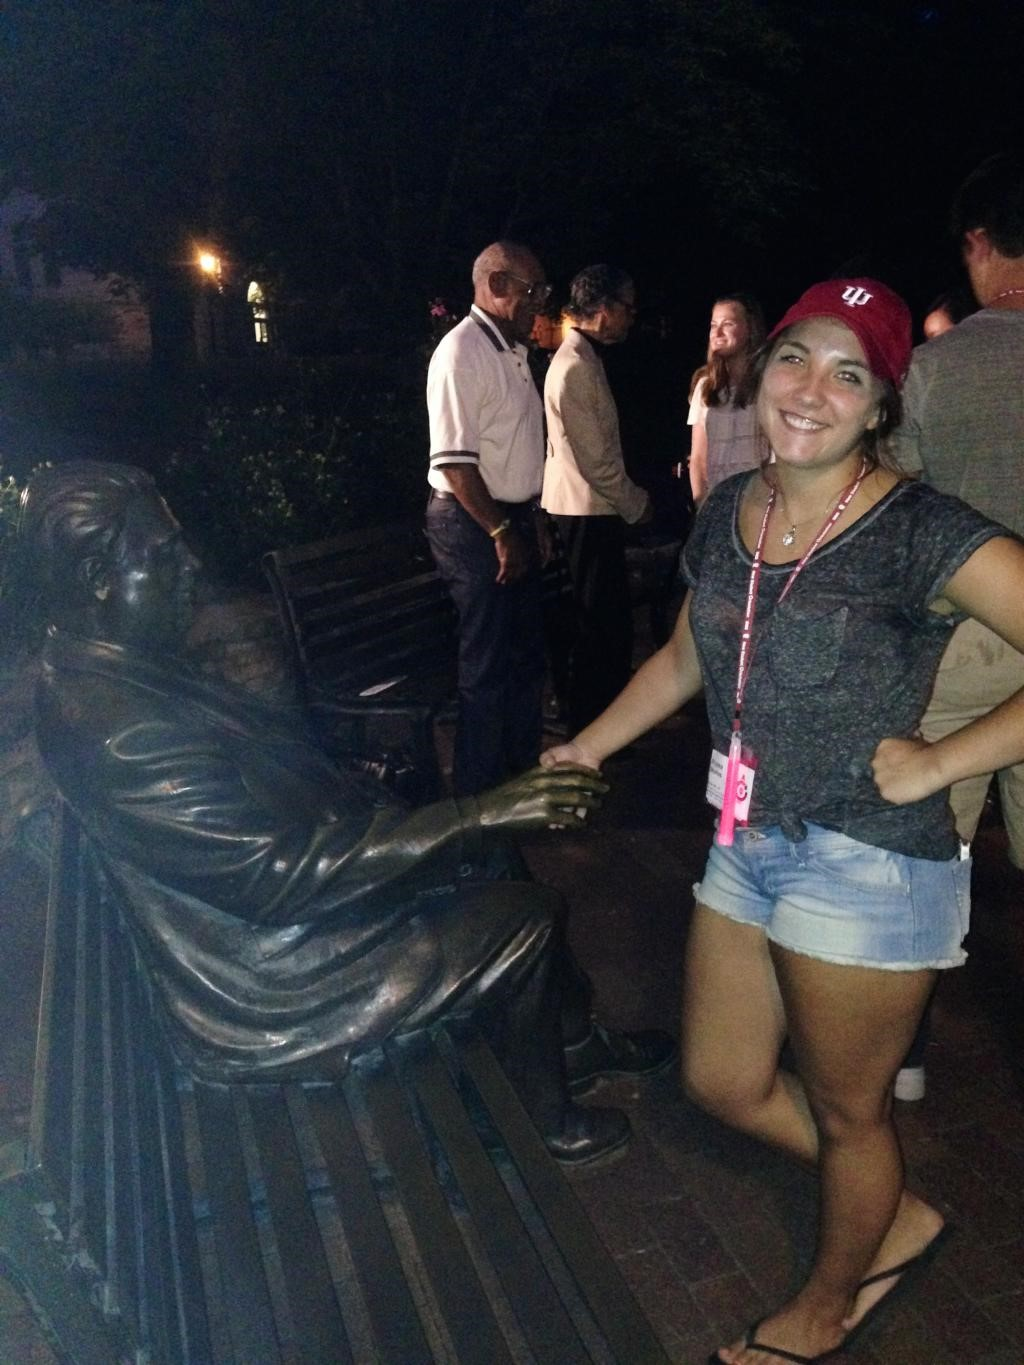 Me shaking Herman B. Wells' hand (part of the night tour),an IU tradition that is said to bring good luck!